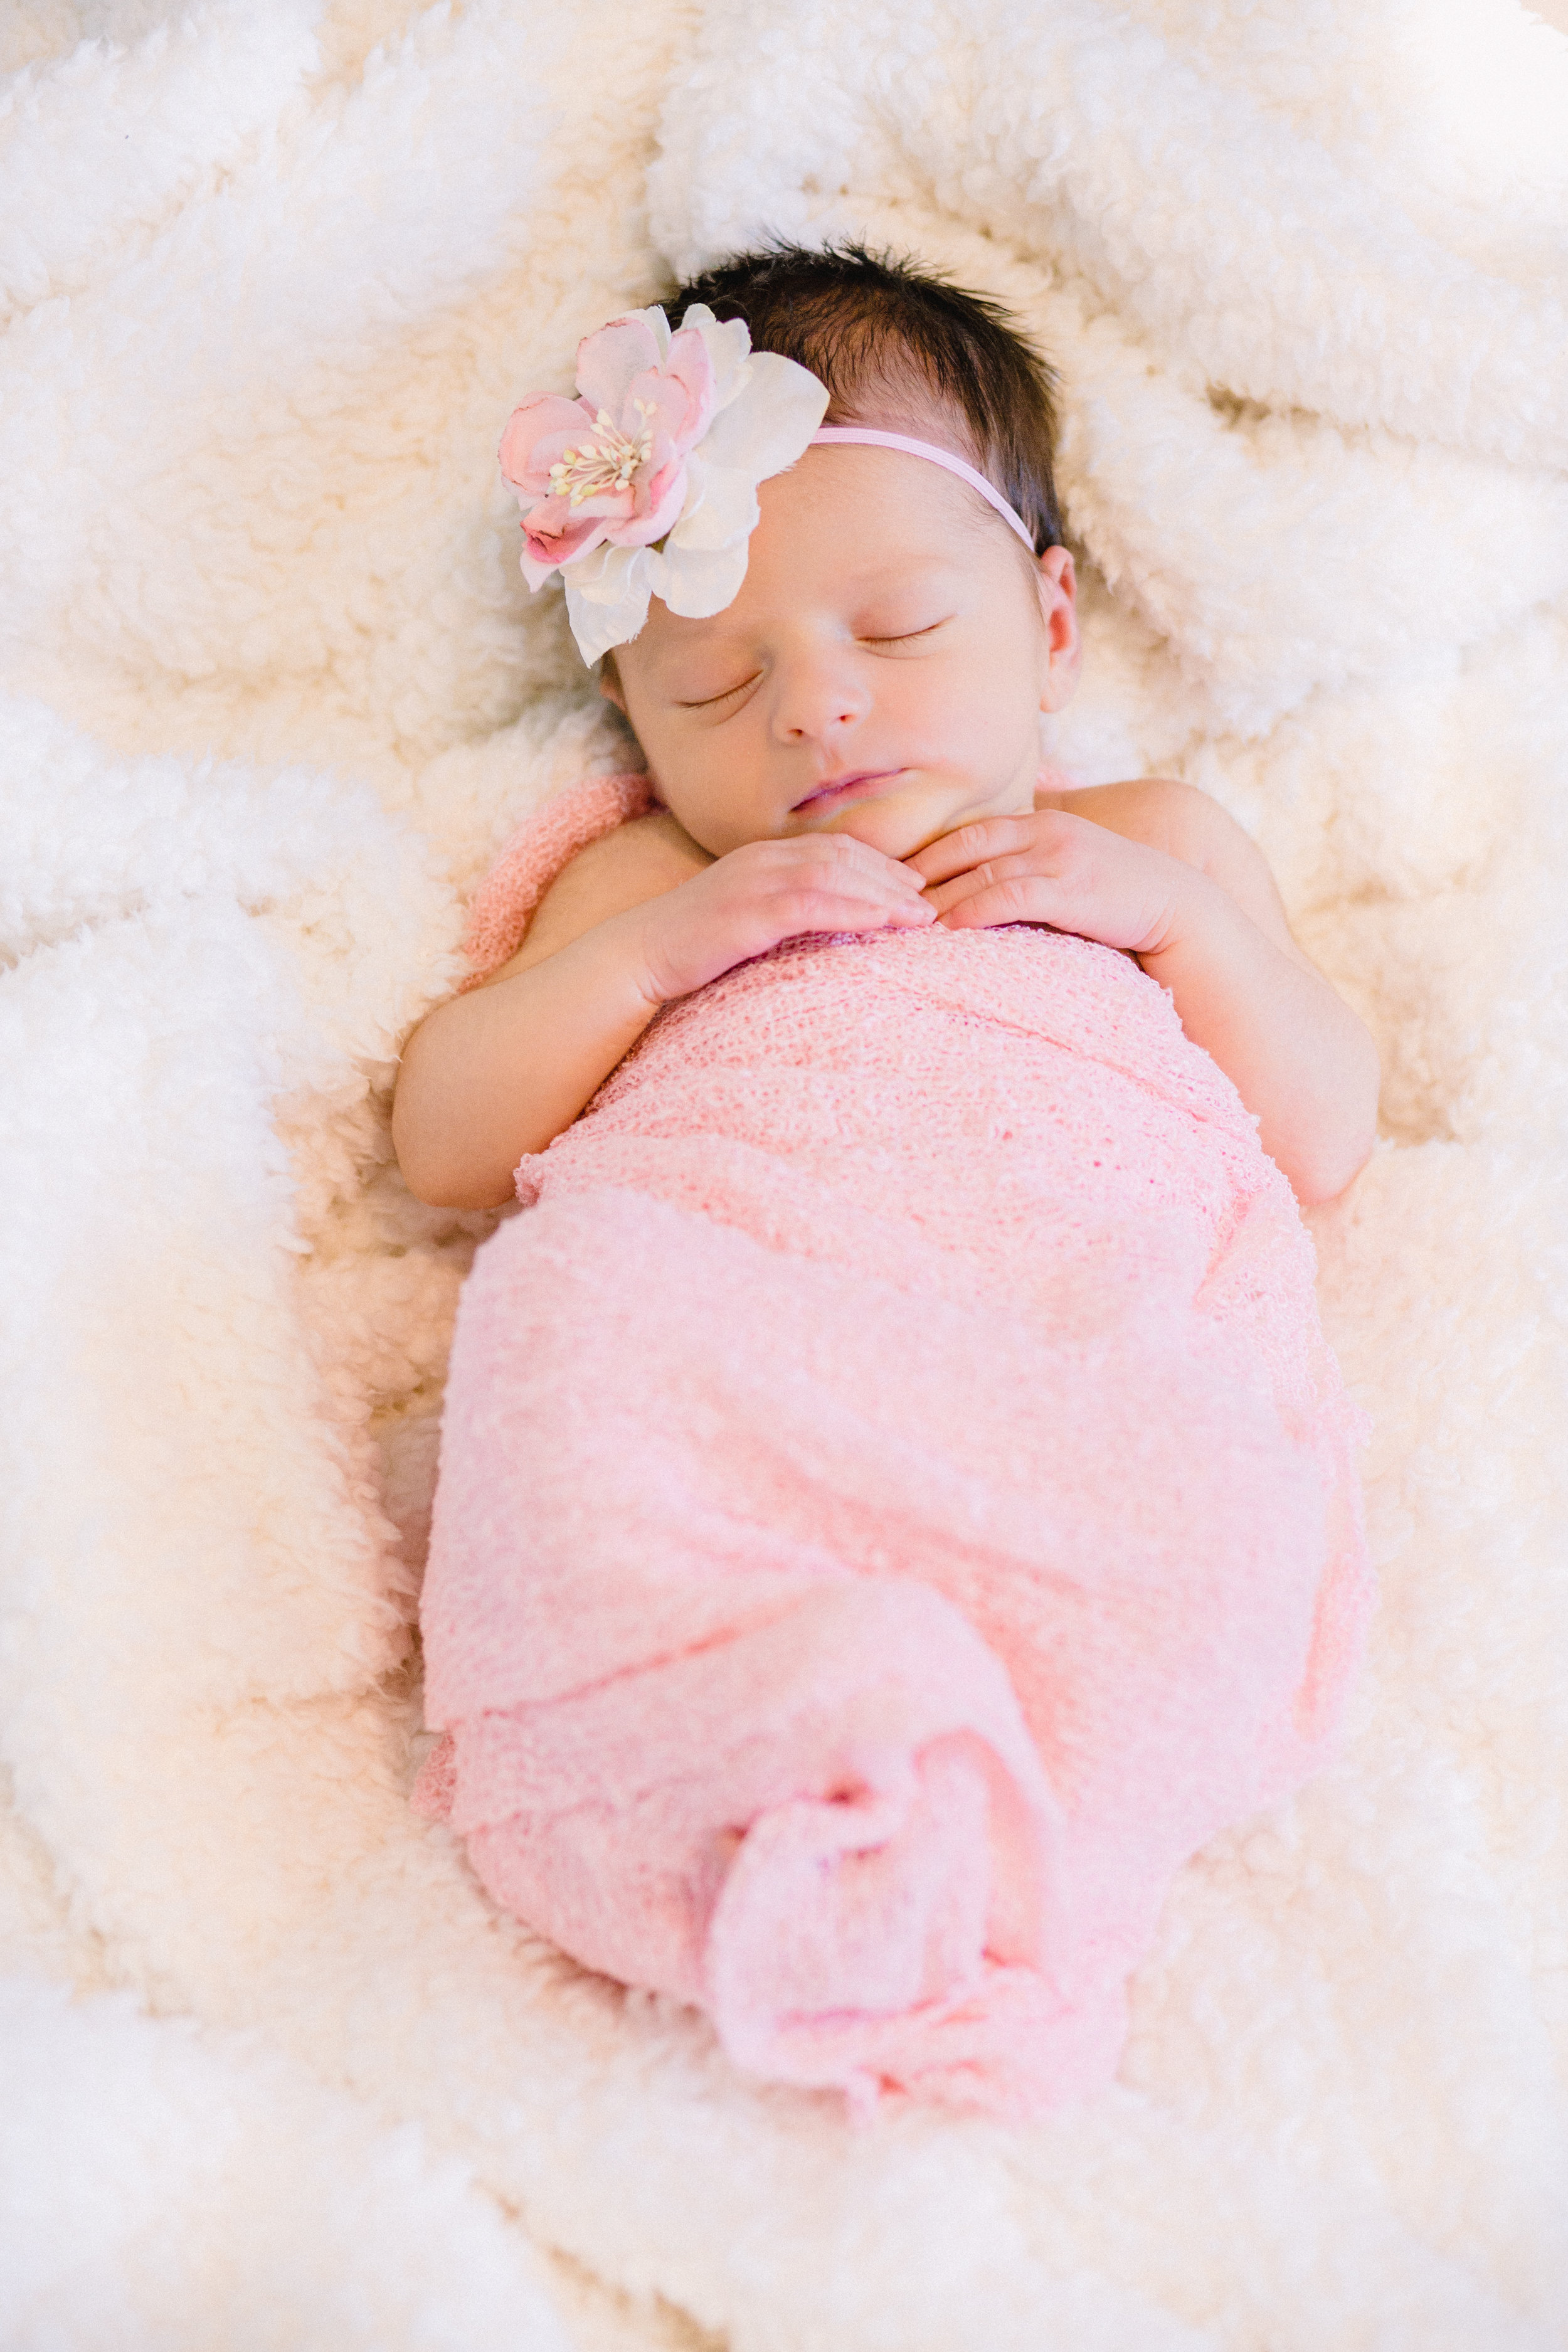 ALacey_Michelle_Photography_LR-9284.jpg